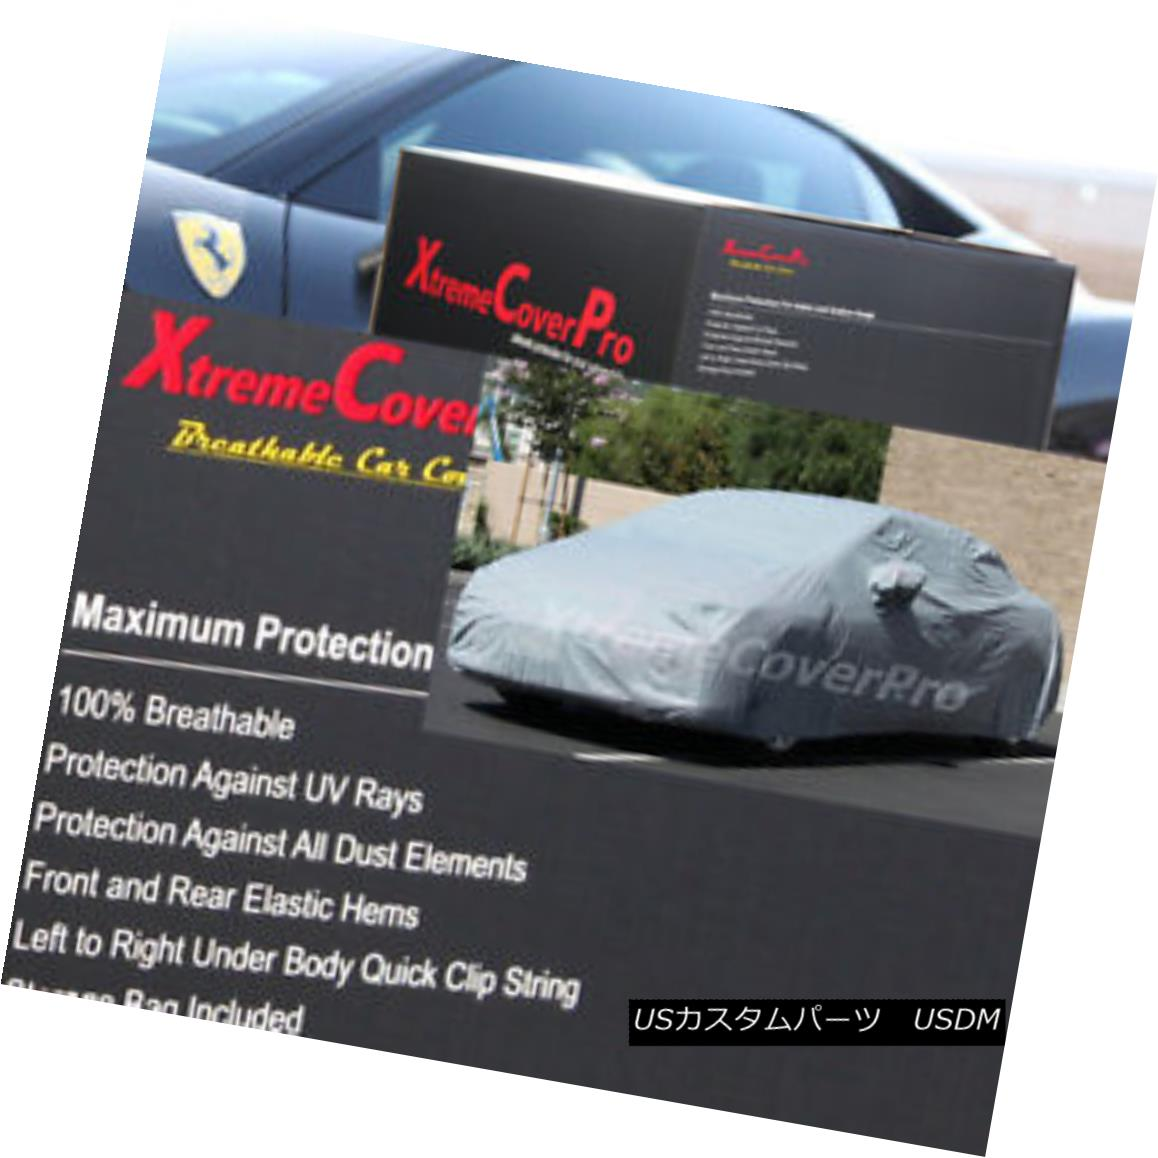 カーカバー 1999 2000 2001 Volkswagen Jetta Breathable Car Cover w/MirrorPocket 1999 2000 2001 Volkswagen Jetta通気性の車カバー、MirrorPocket付き